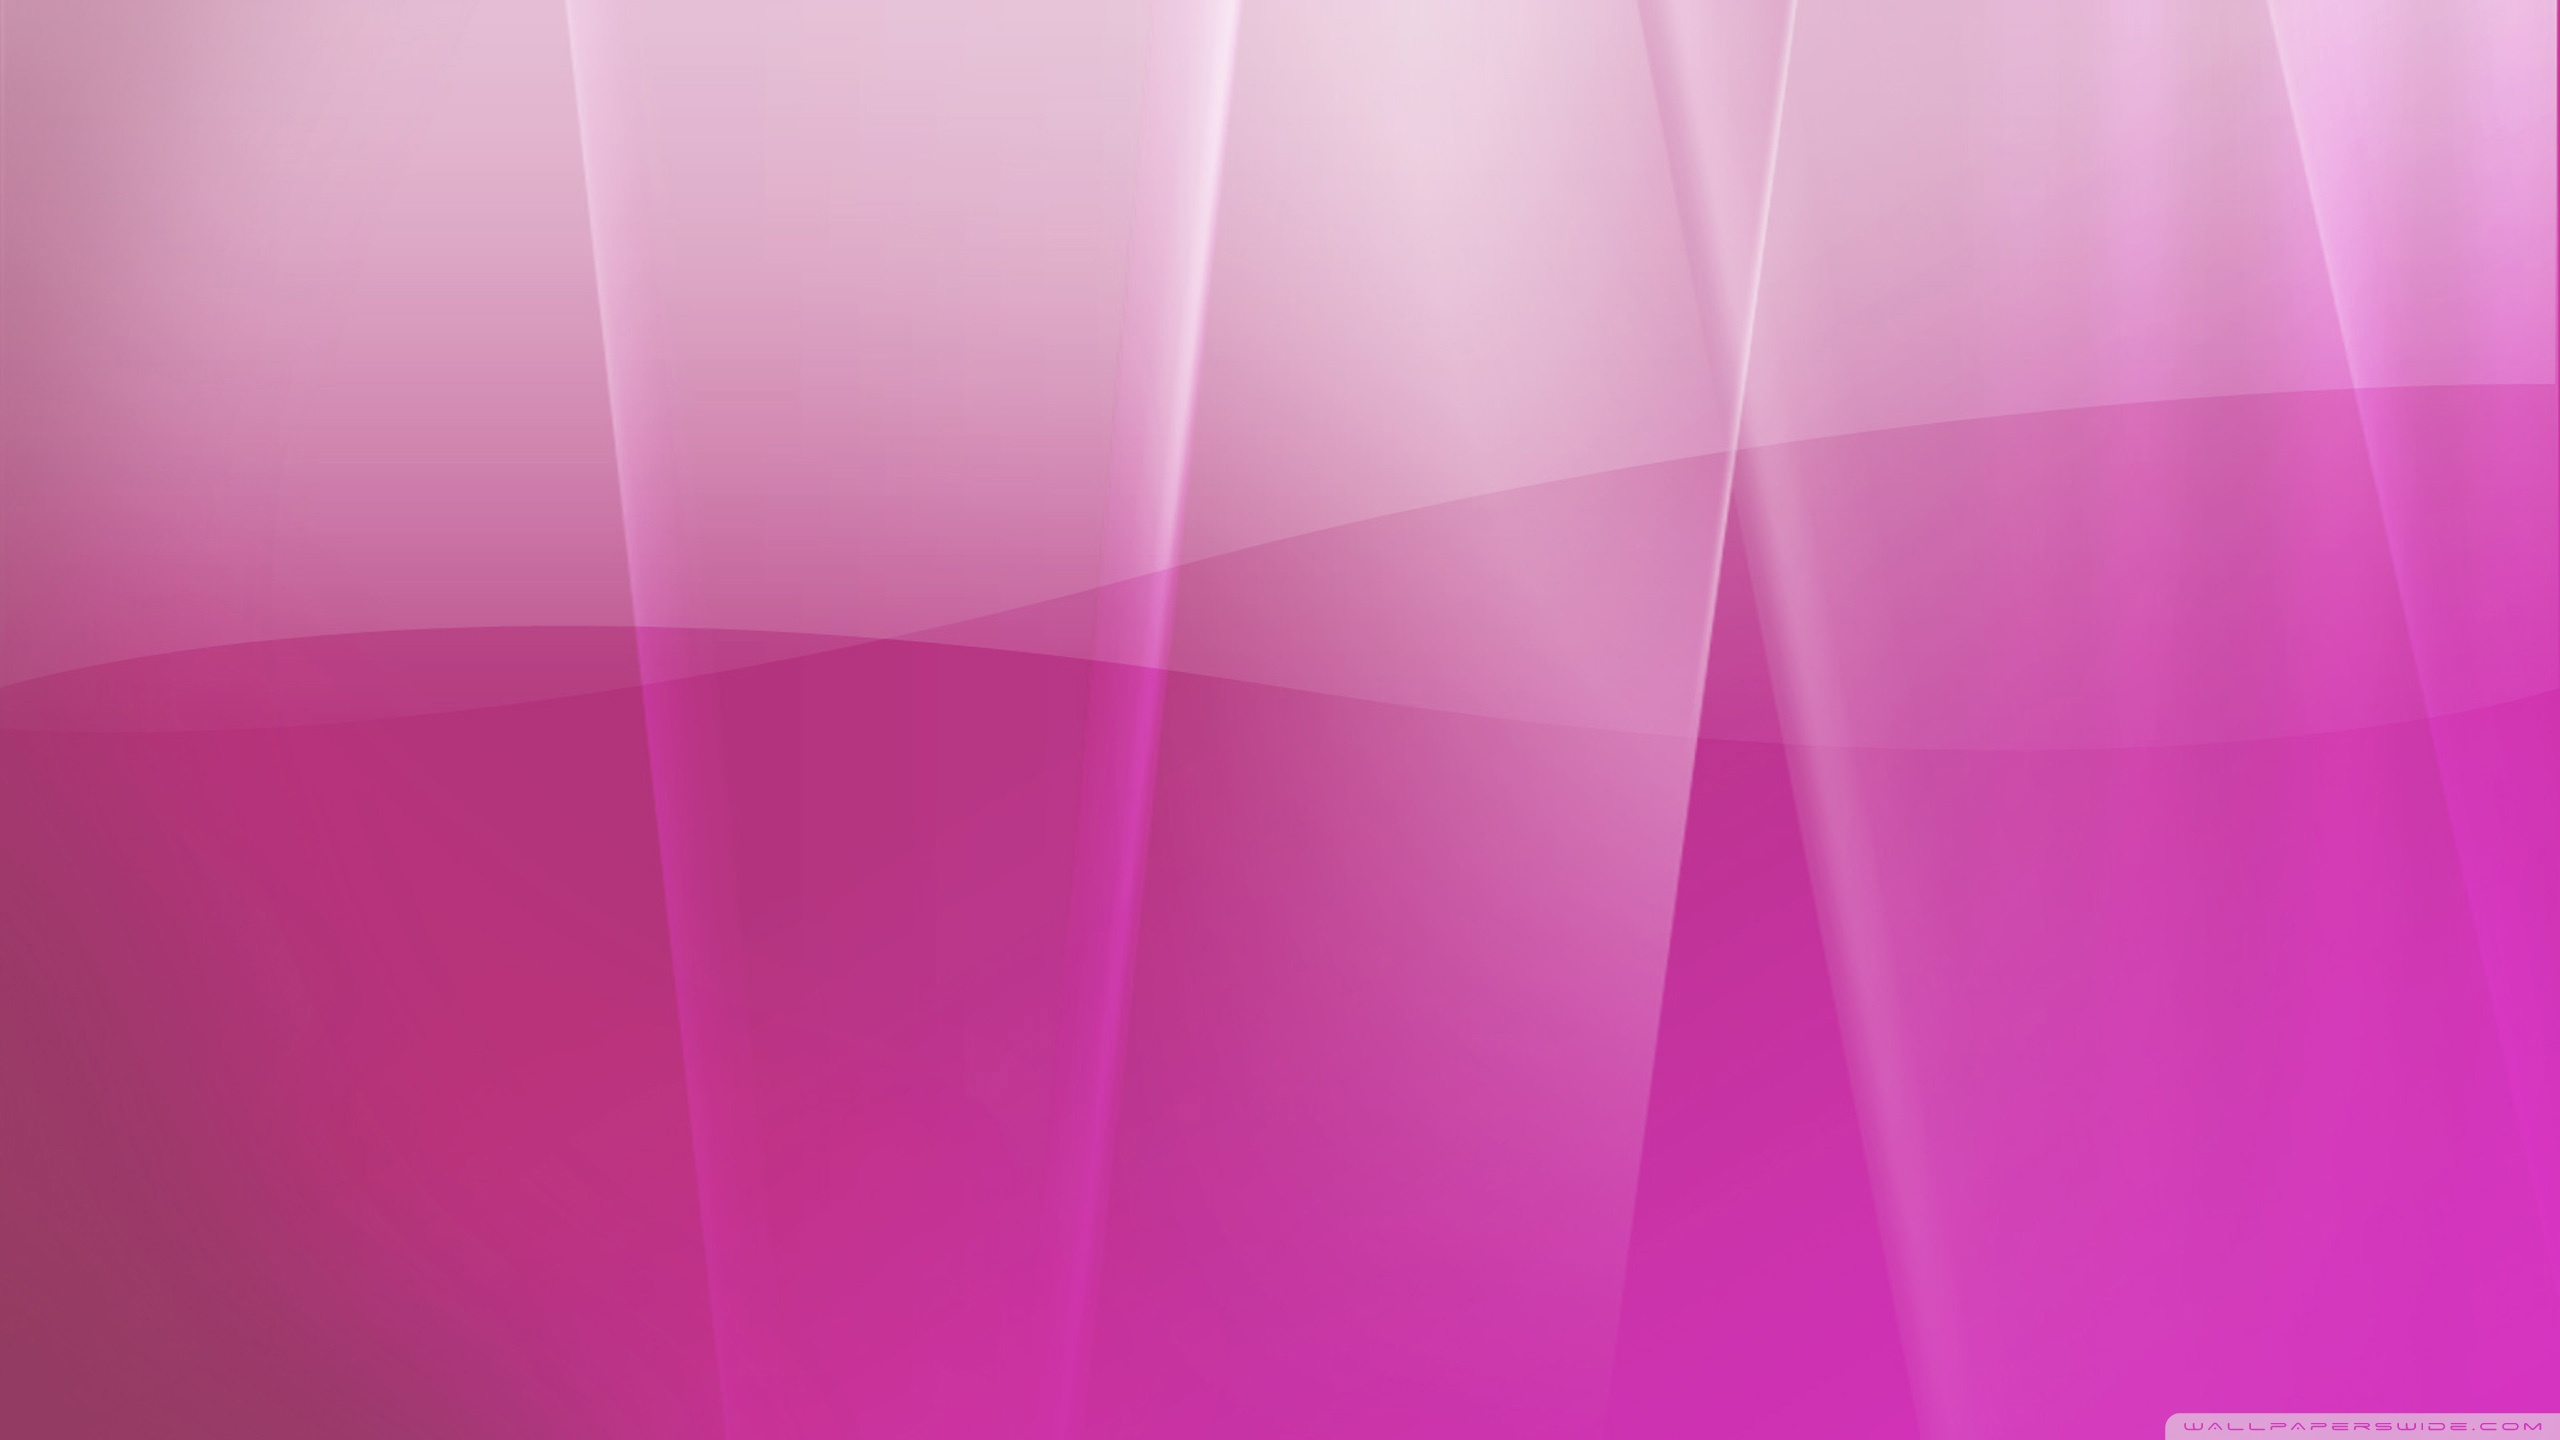 Glossy Pink Background 4K HD Desktop Wallpaper for 4K Ultra HD 2560x1440